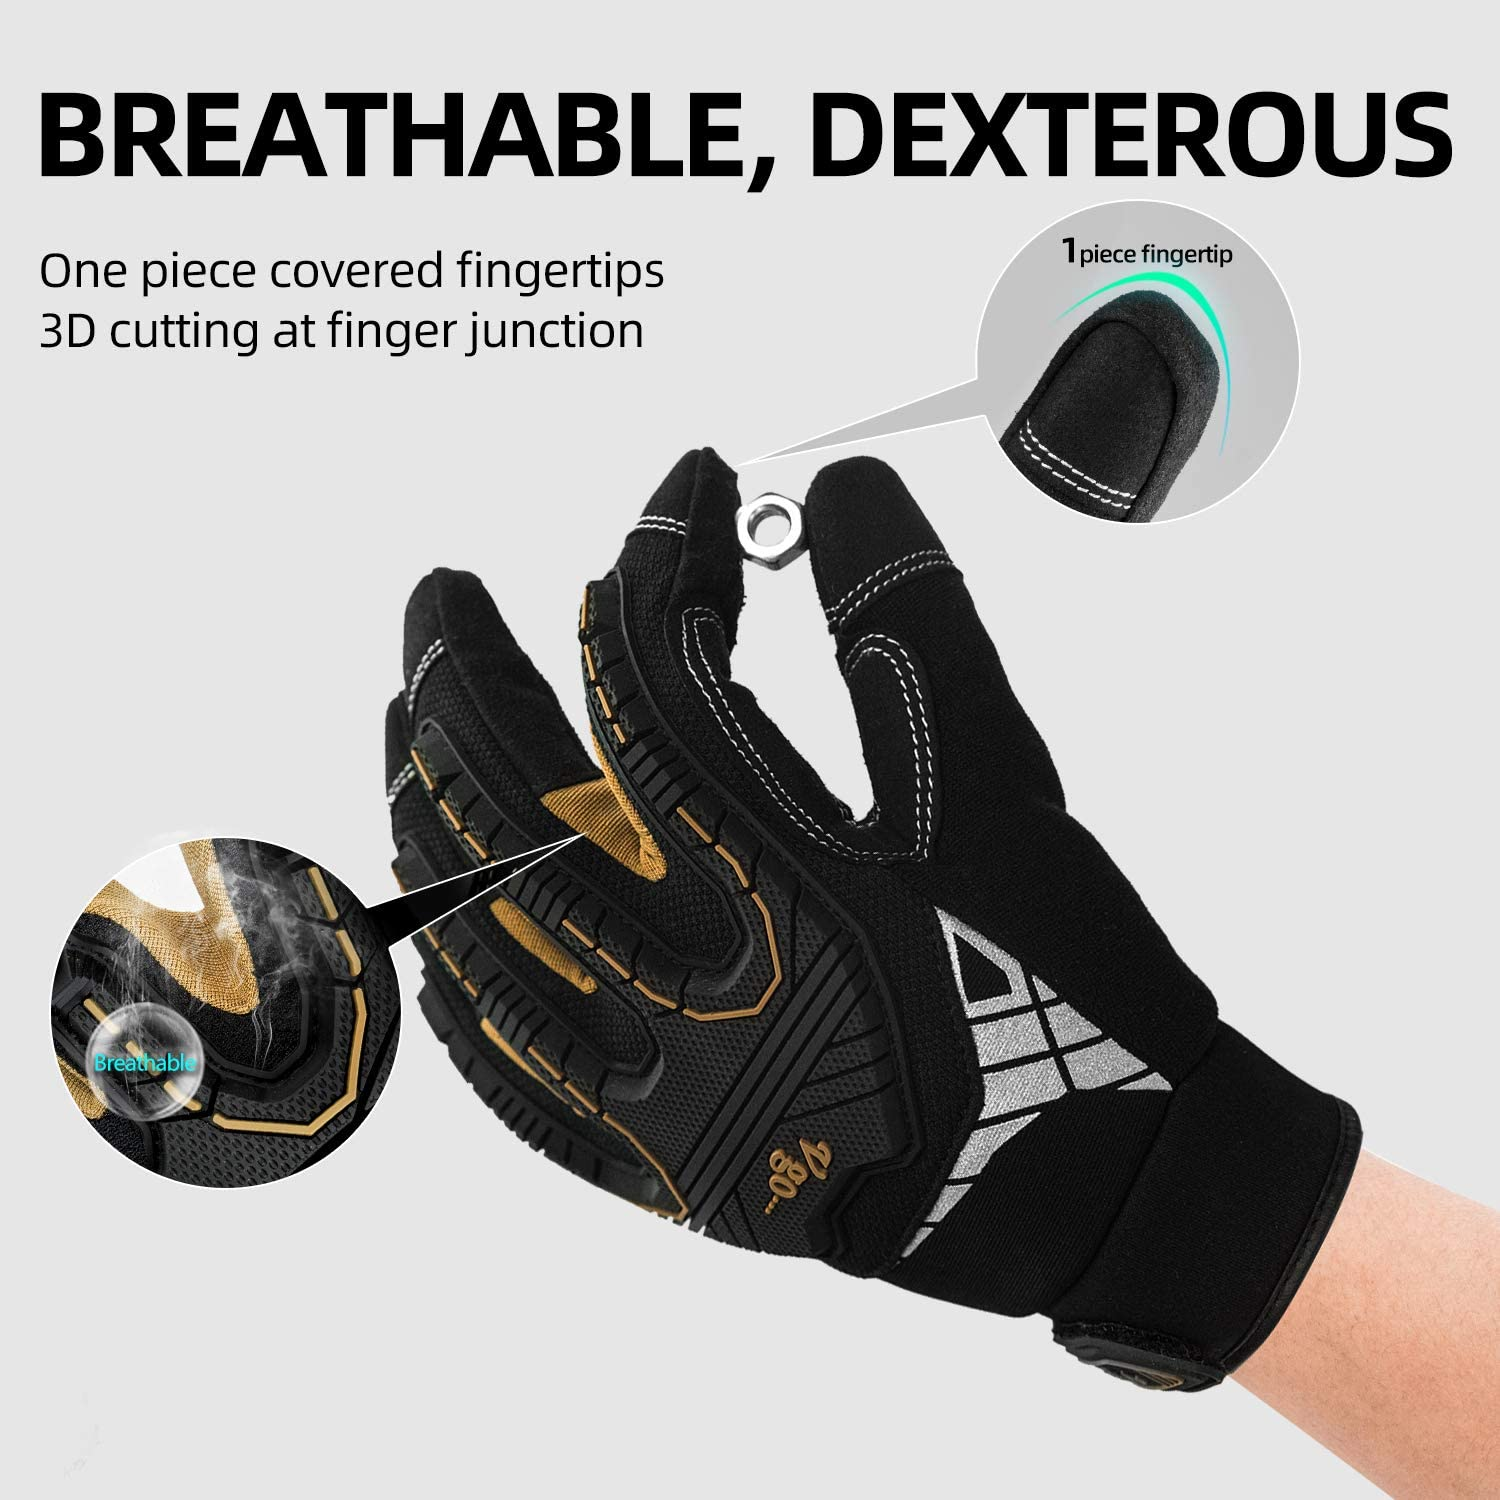 Size L, Black, SL8849 Impact Protection Mechanic Gloves High Dexterity Vgo 1-Pair Heavy-Duty Synthetic Leather Work Gloves Rigger Gloves Touchscreen Capable Vibration Reduction